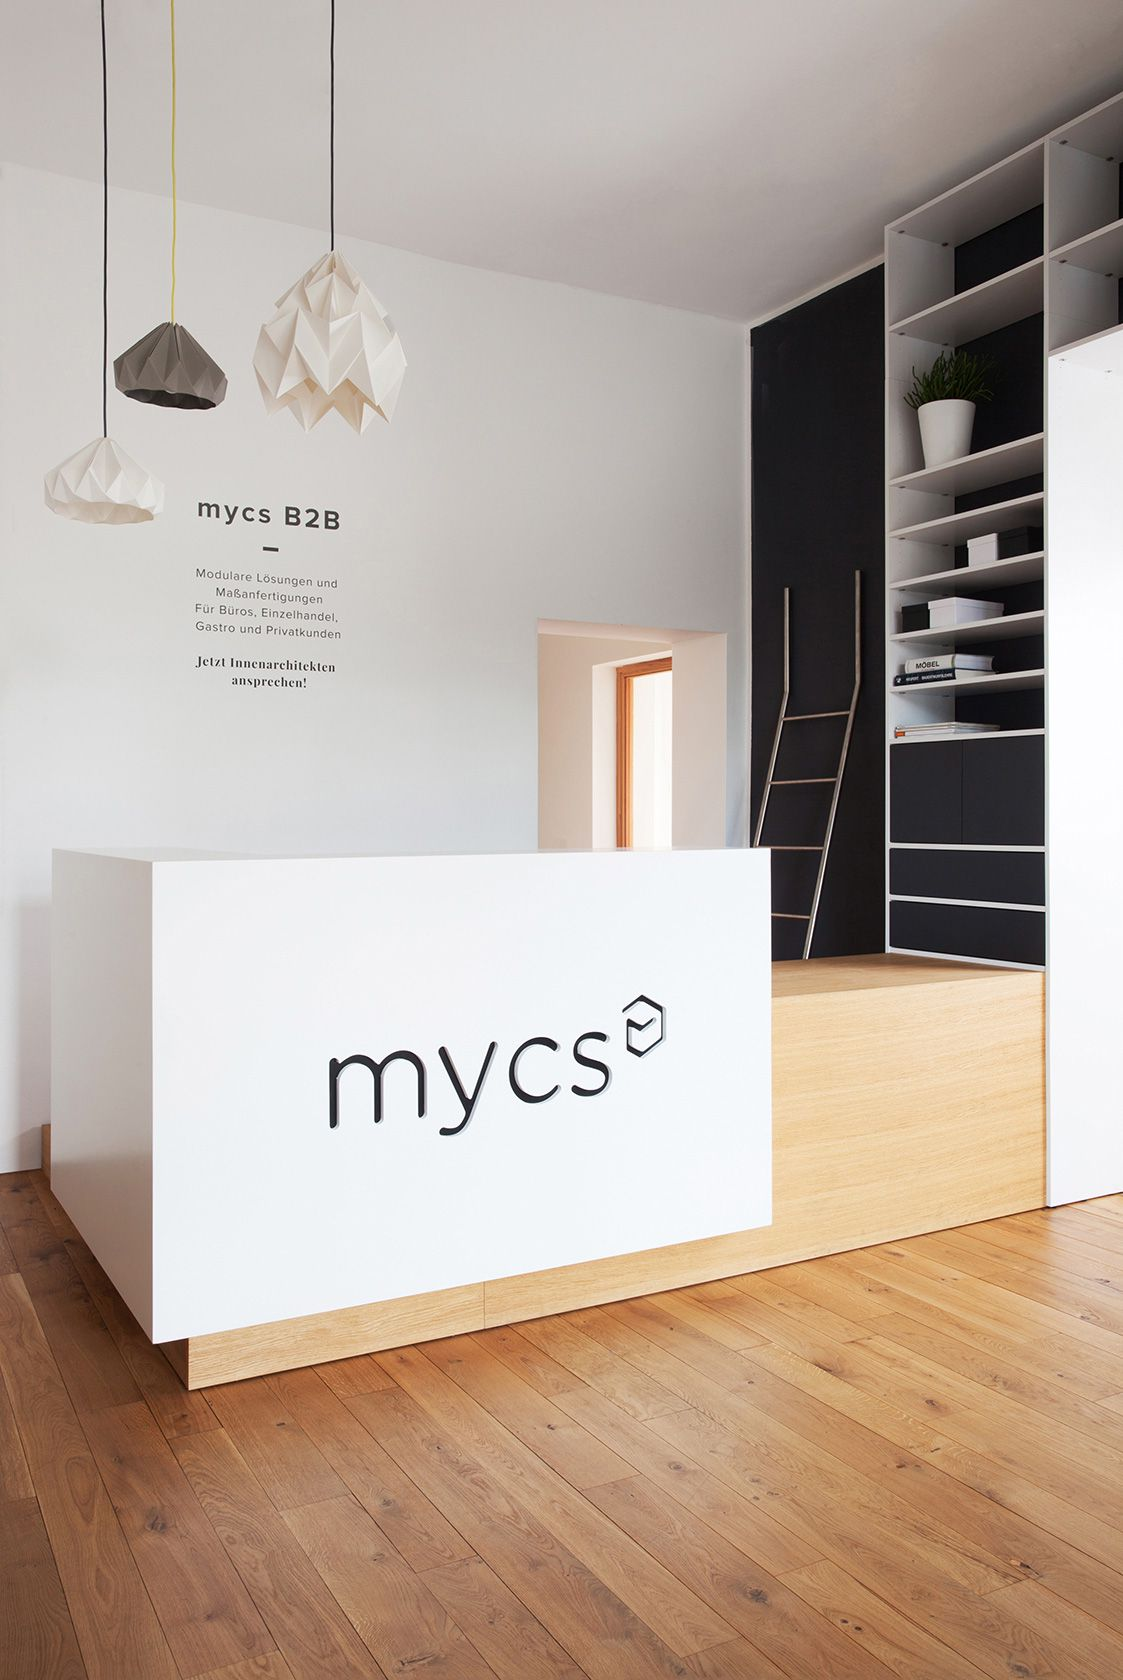 devenez le designer de vos meubles avec mycs emmanuelle morice. Black Bedroom Furniture Sets. Home Design Ideas